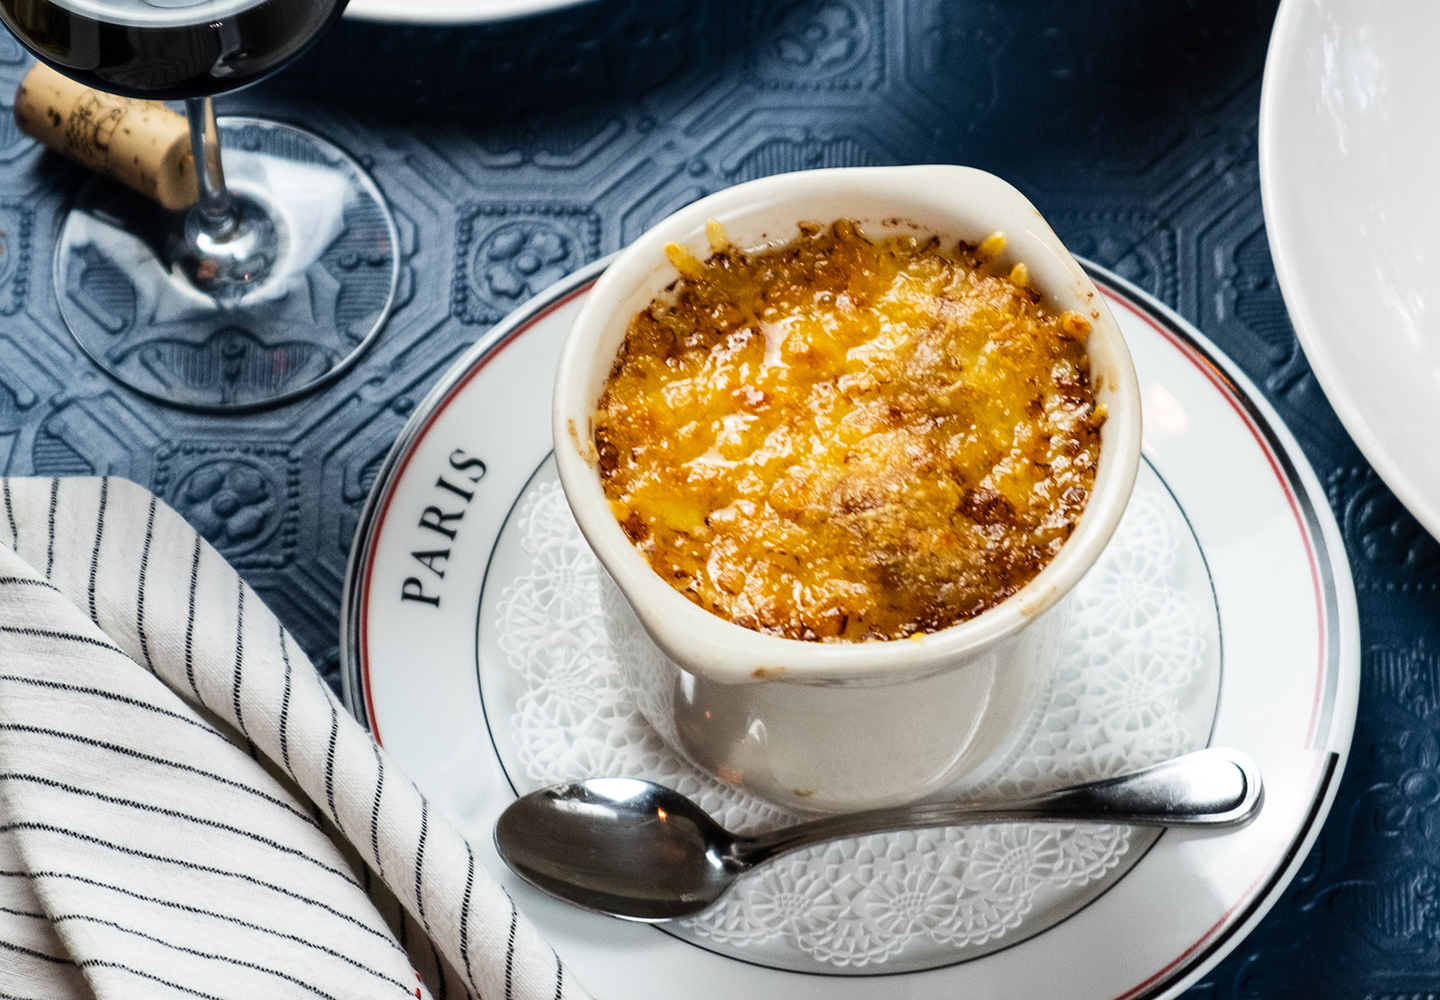 Mon AMi Gabi French Onion Soup